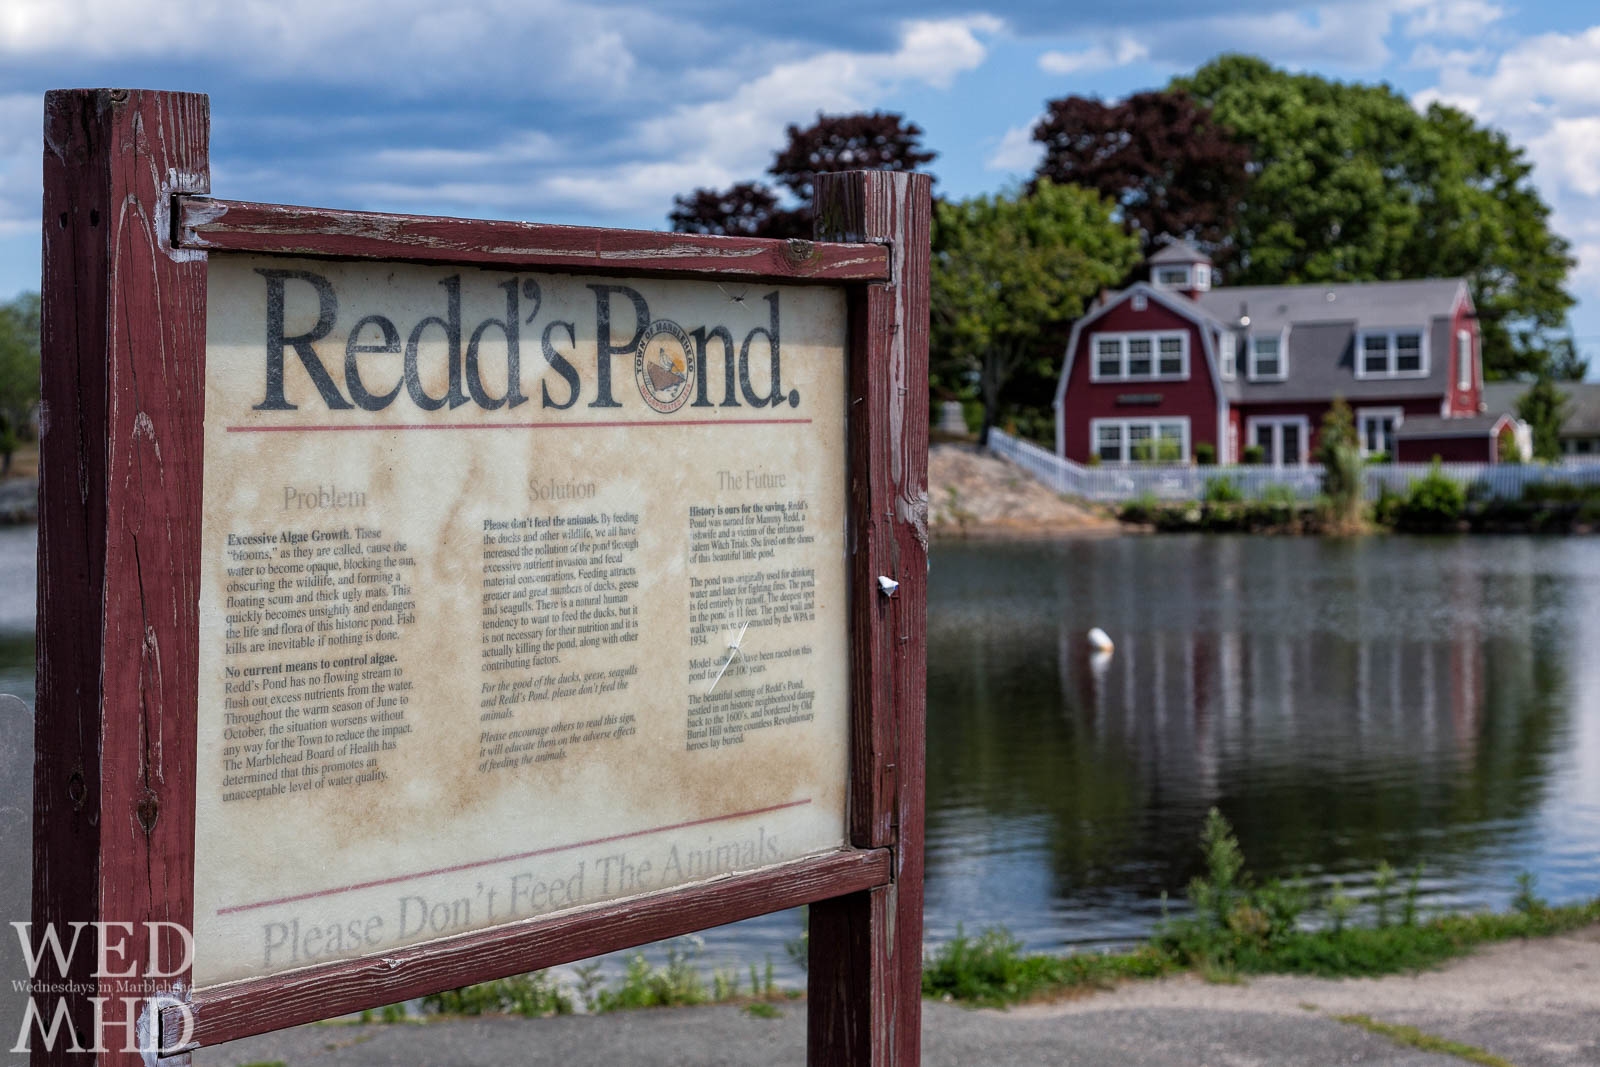 A sign at Redd's Pond offers information on the current state and history of this idylic pond